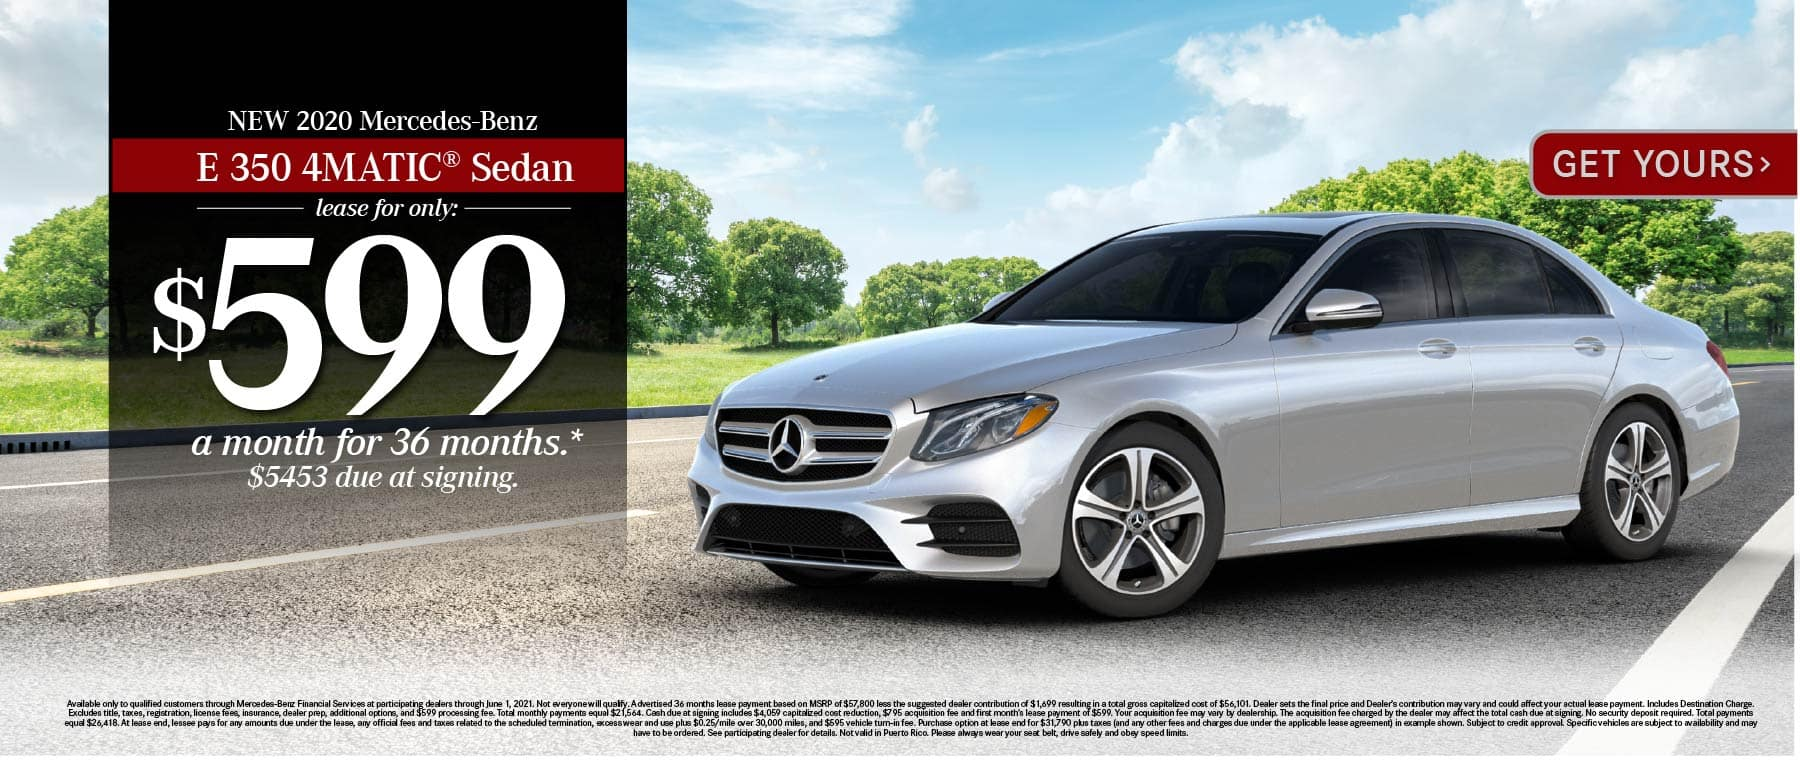 New 2021 Mercedes-Benz E 350 4MATIC® Lease for only: $599 a month for 36 months. $5453 due at signing. Get Yours.